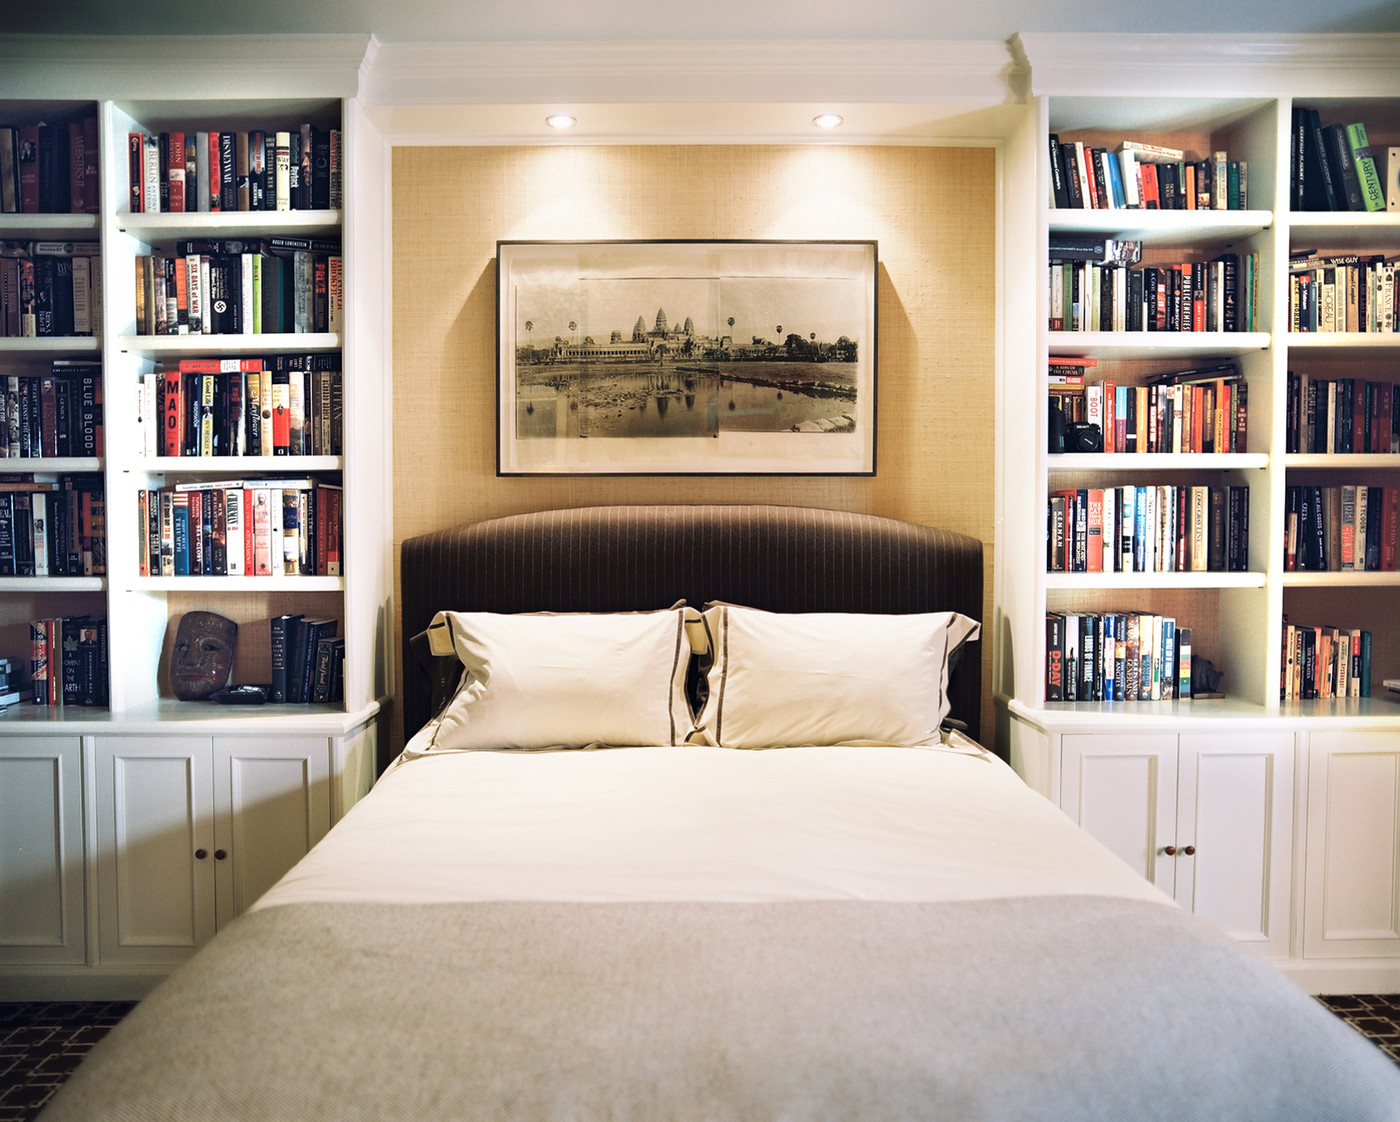 Bookshelf Ideas For Bedroom Bookcase Bed Photos Design Ideas Remodel And Decor Lonny